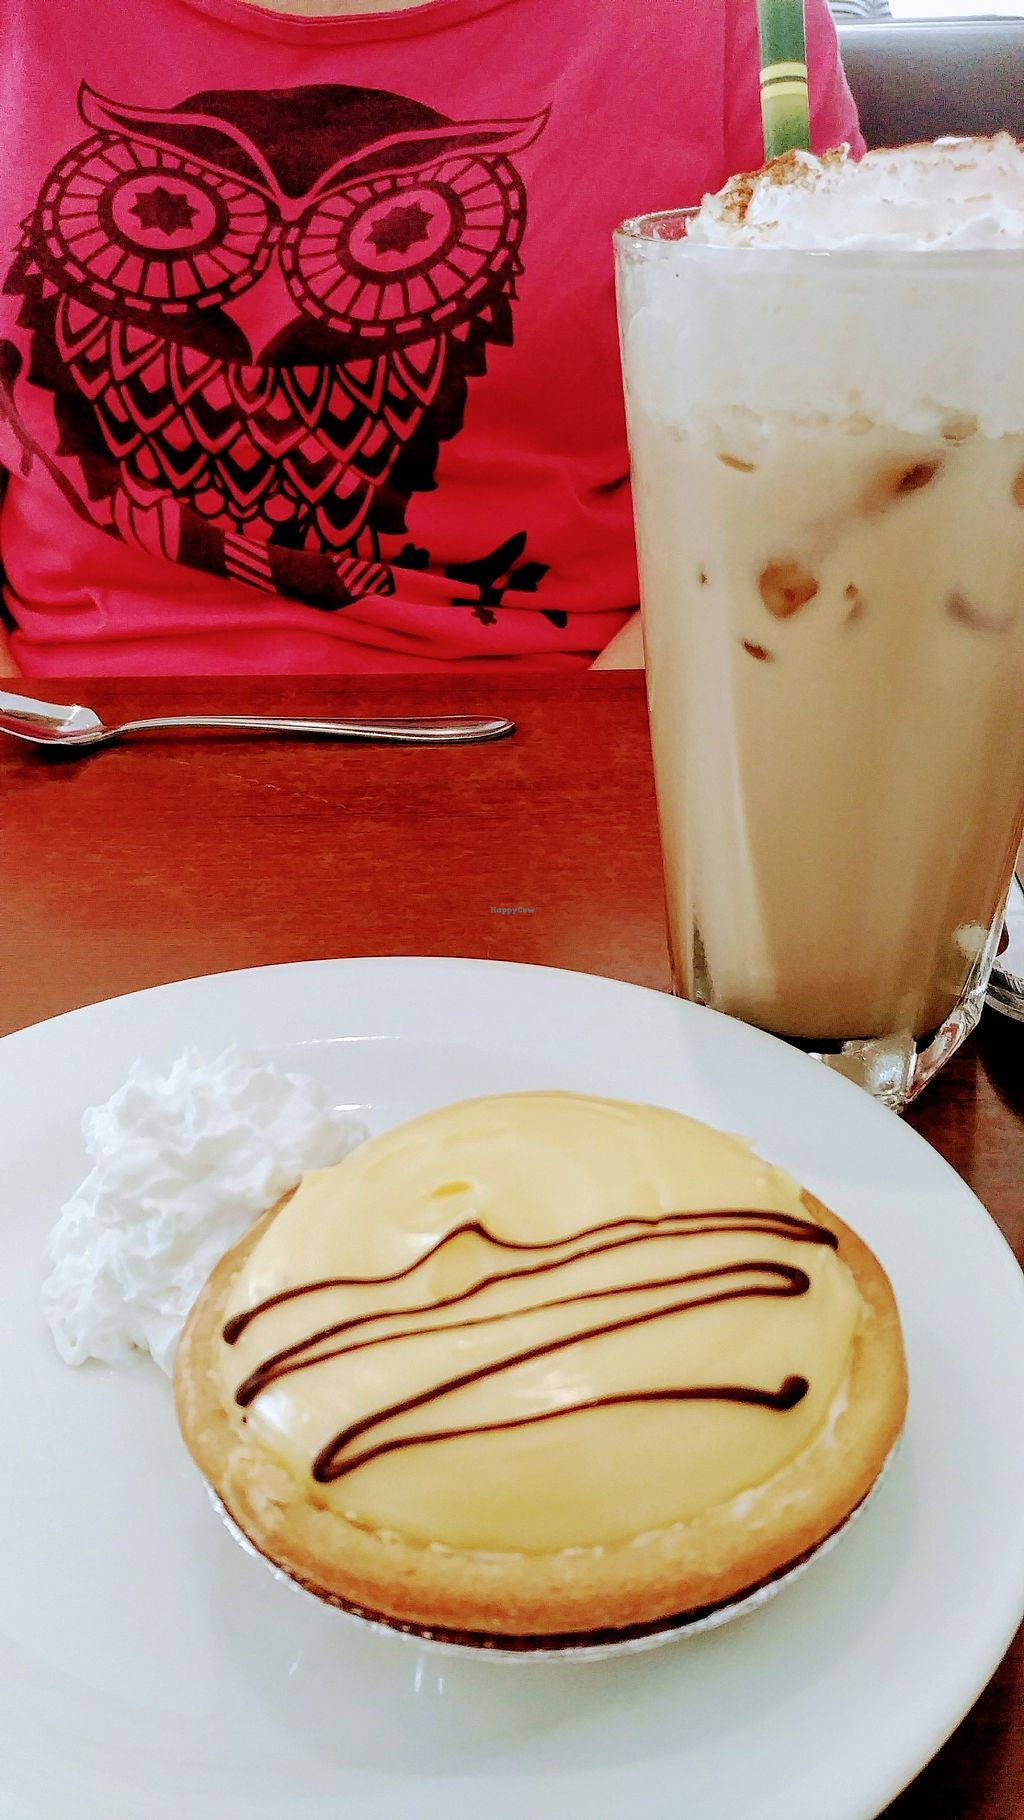 """Photo of The Green Edge Store and Cafe  by <a href=""""/members/profile/karlaess"""">karlaess</a> <br/>Lemon tart and iced coffee <br/> January 7, 2018  - <a href='/contact/abuse/image/19791/343948'>Report</a>"""